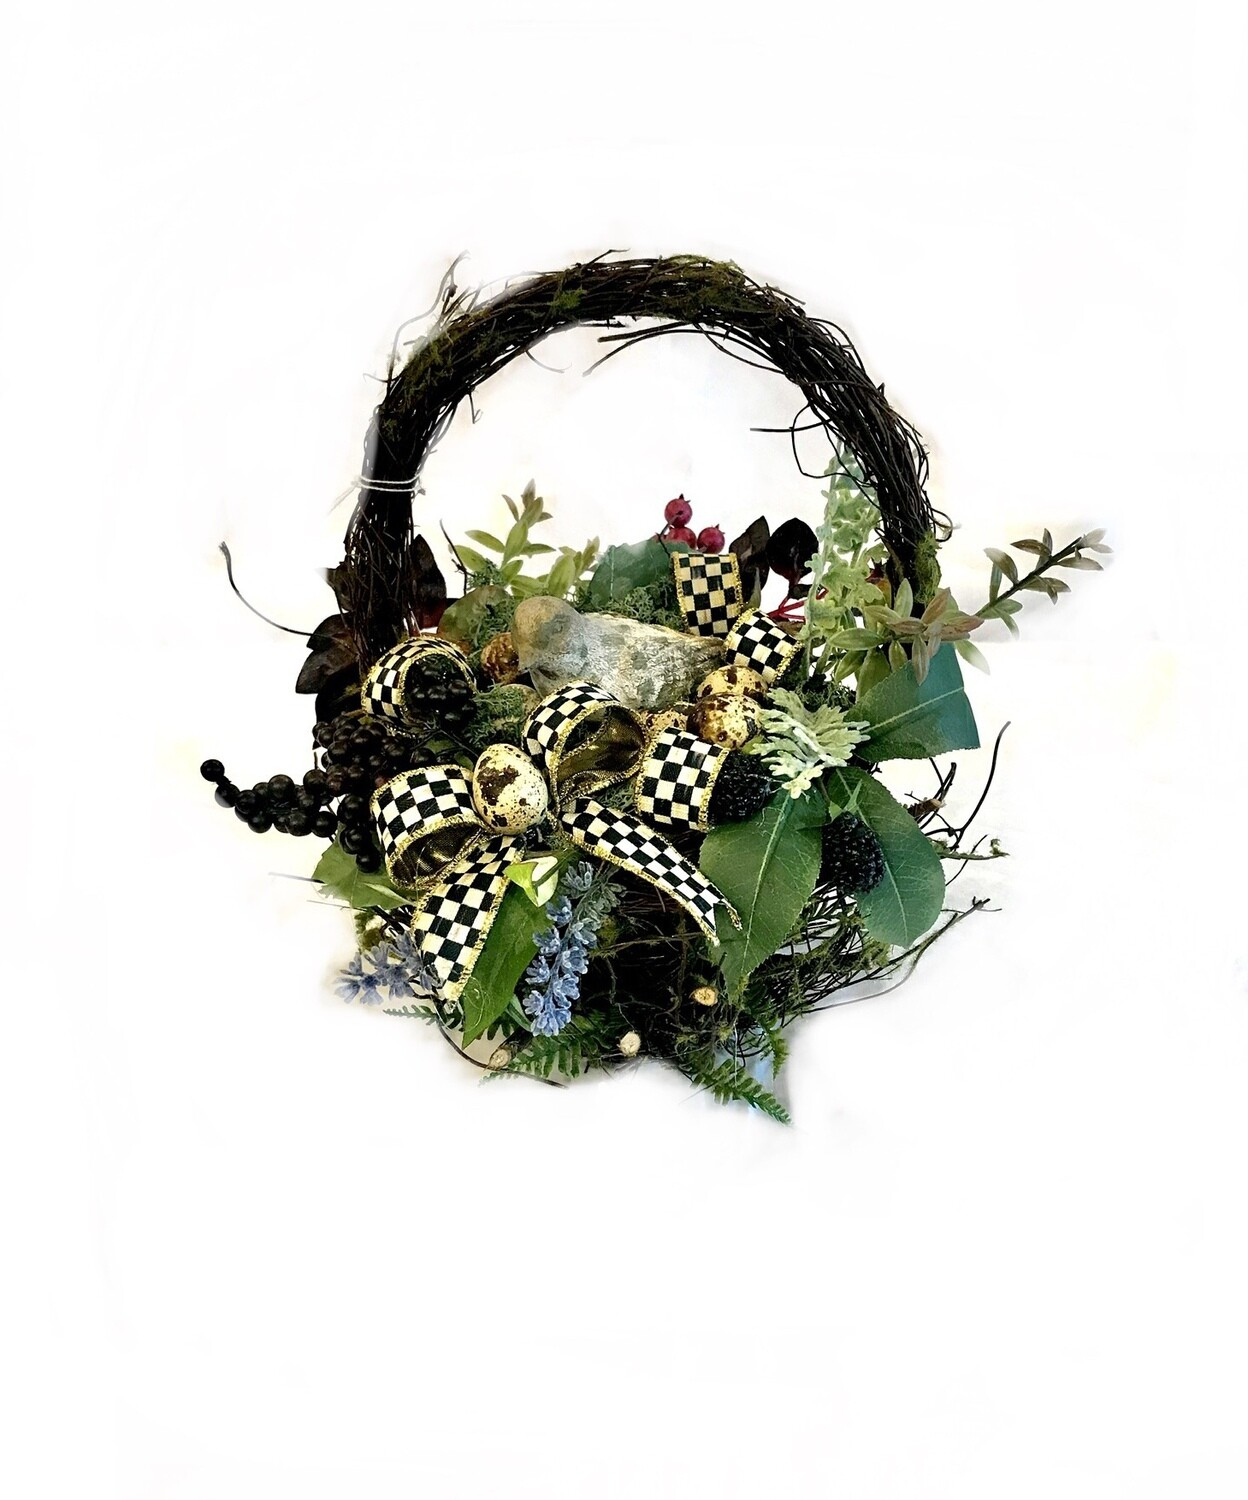 Mossy twig basket small bird floral